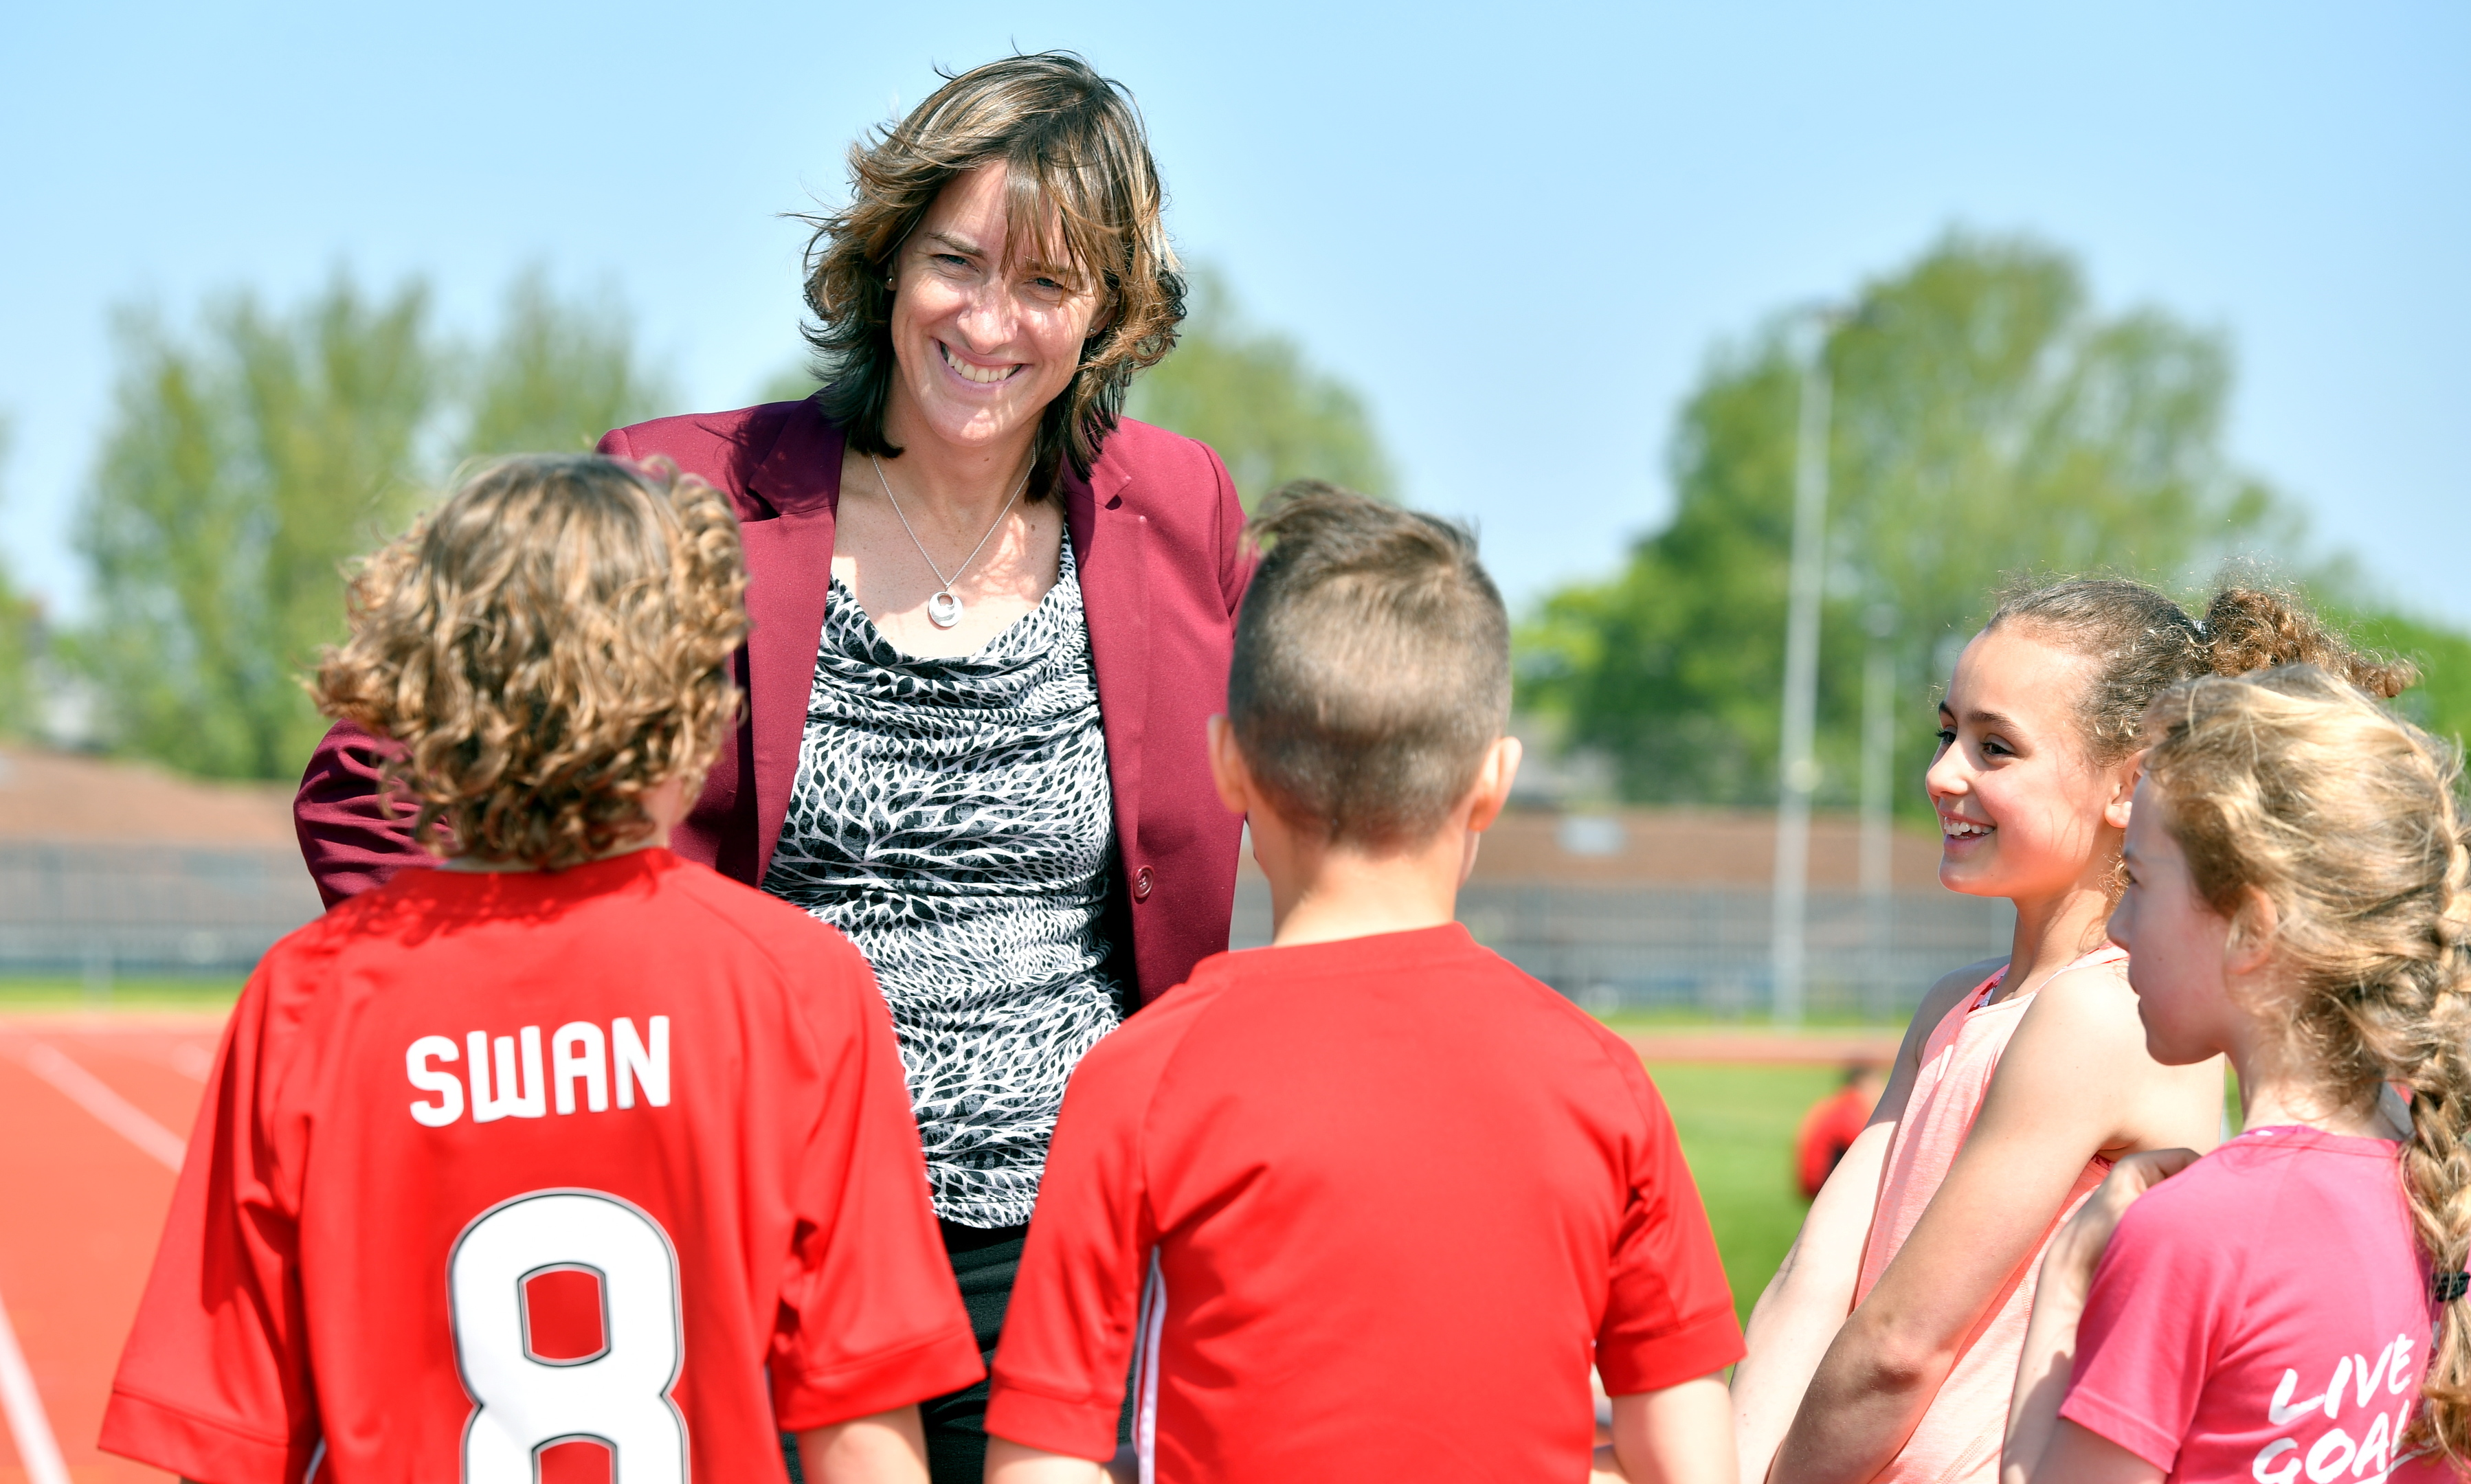 Dame Katherine Grainger remains an inspiration for the next generation.